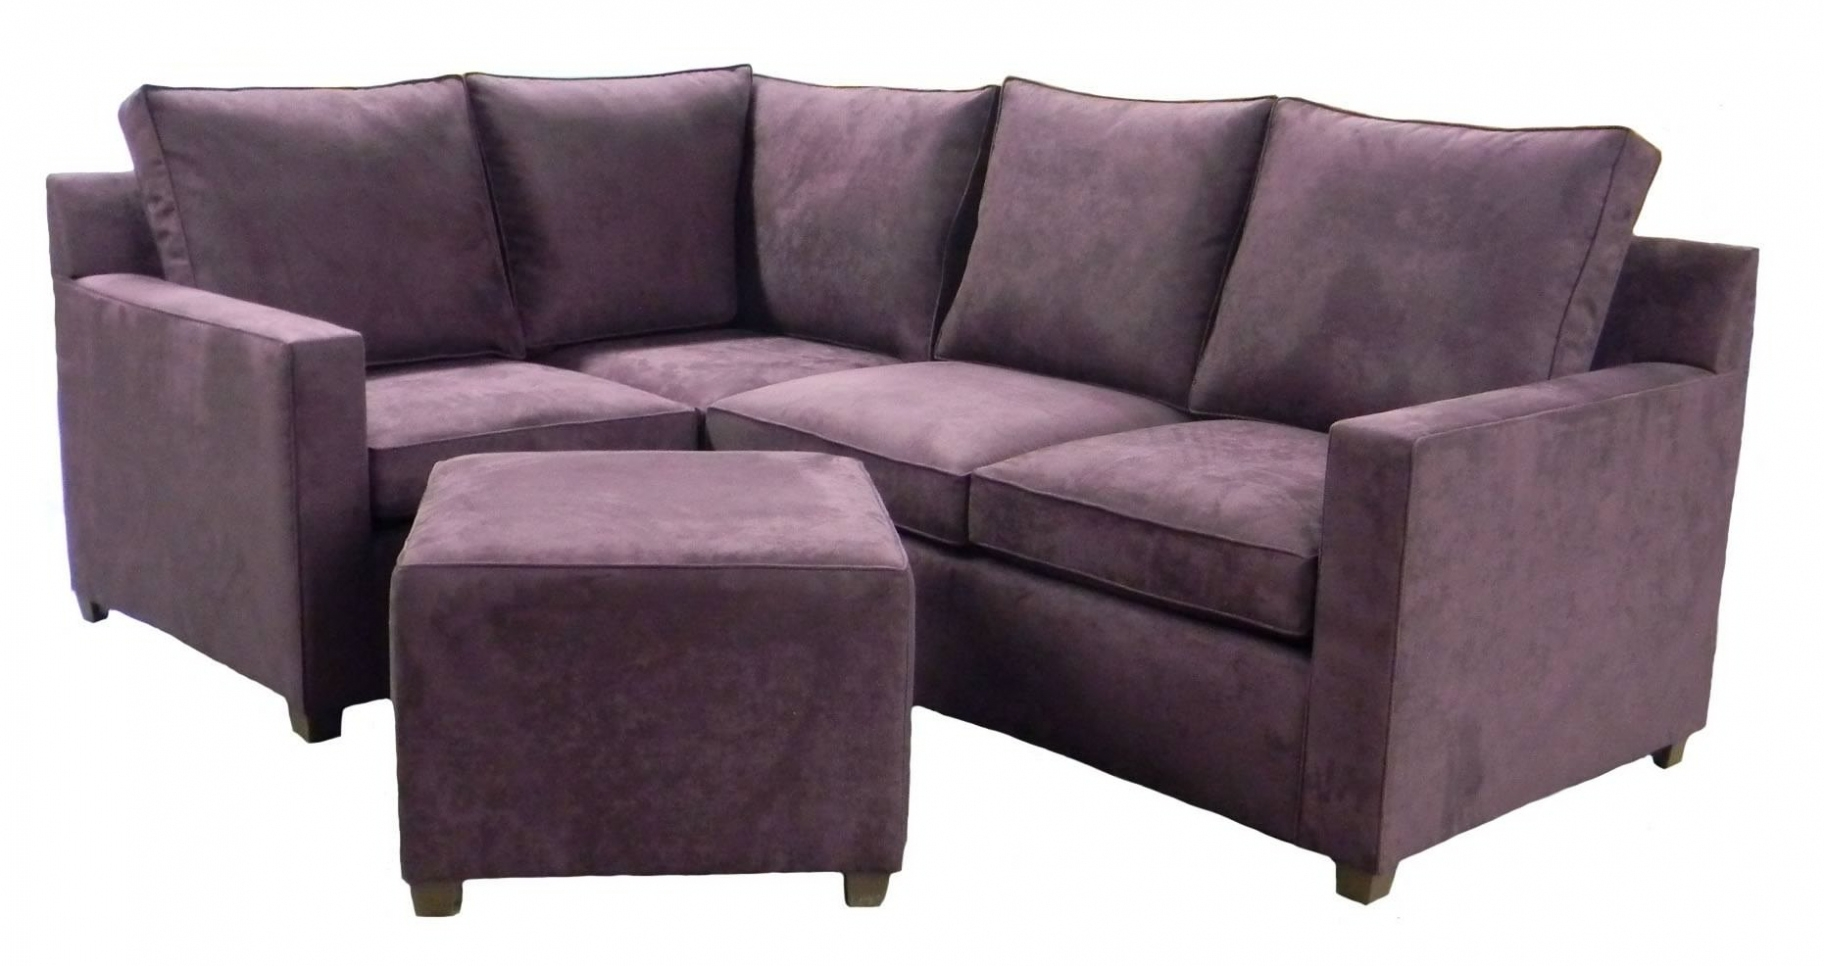 Furniture ~ Sectional Sofa Design: Apartment Size Sectional Sofa Bed In Apartment Size Sofas (Image 7 of 10)